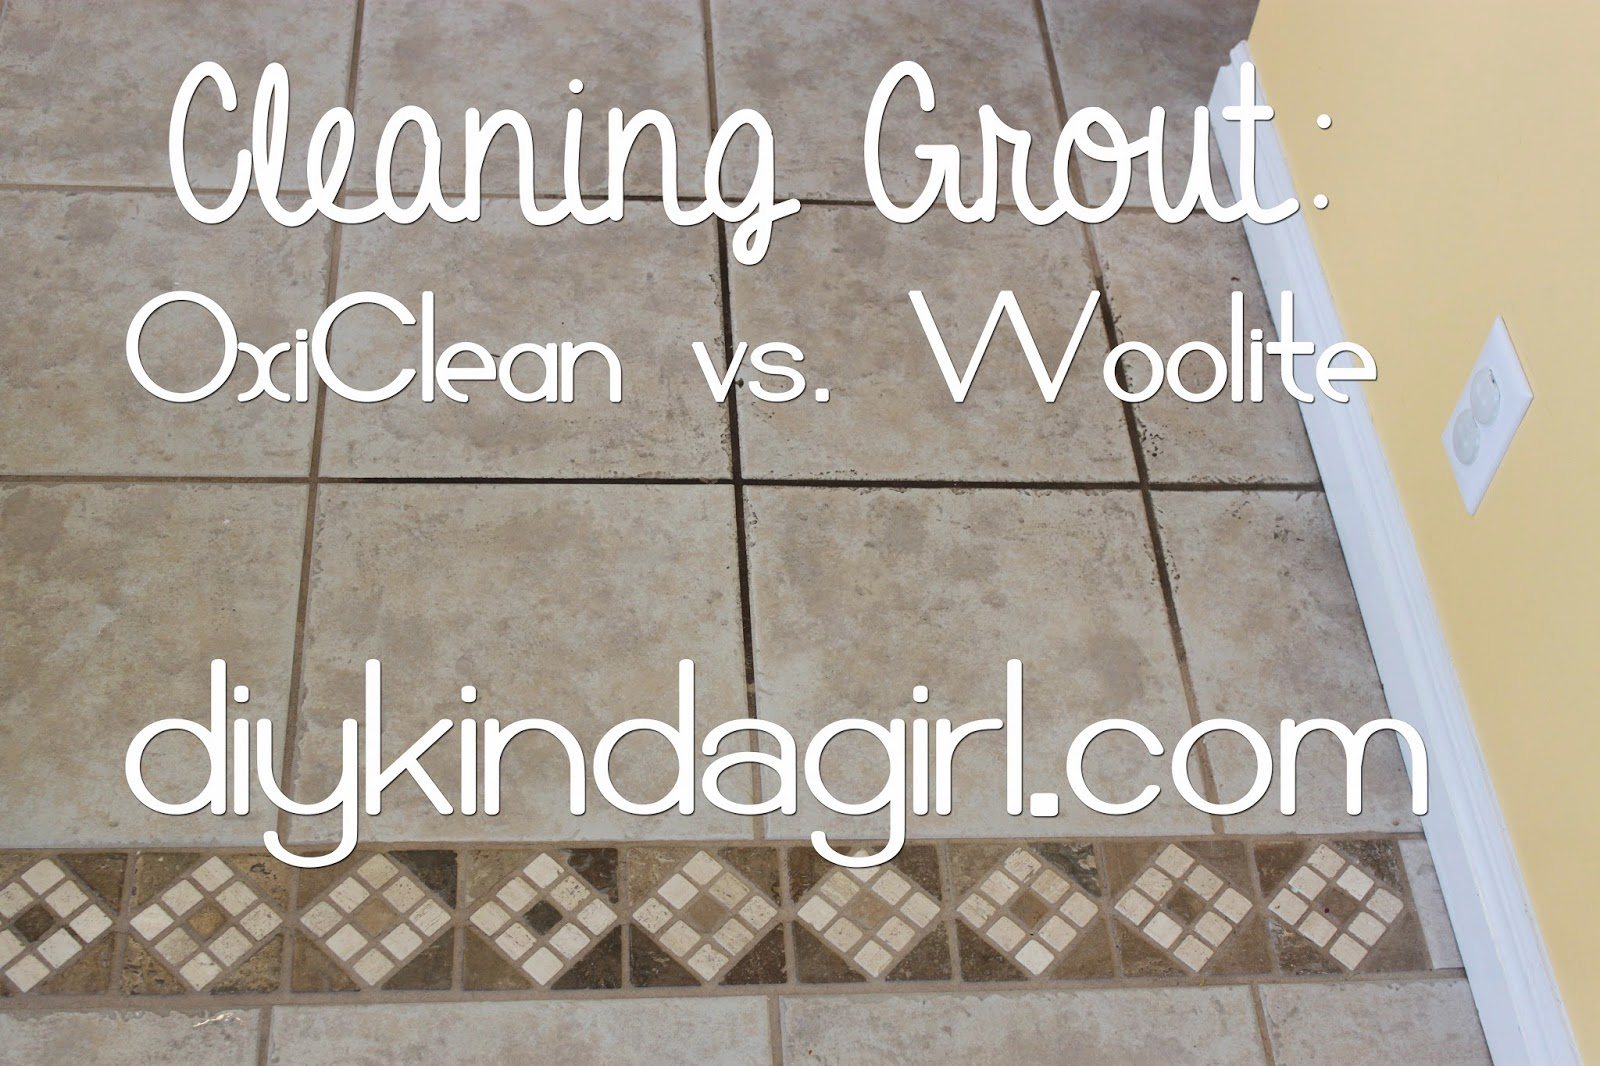 Kitchen Floor Grout Cleaner Diy Kinda Girl Diy Household Tip Cleaning Grout Oxiclean Vs